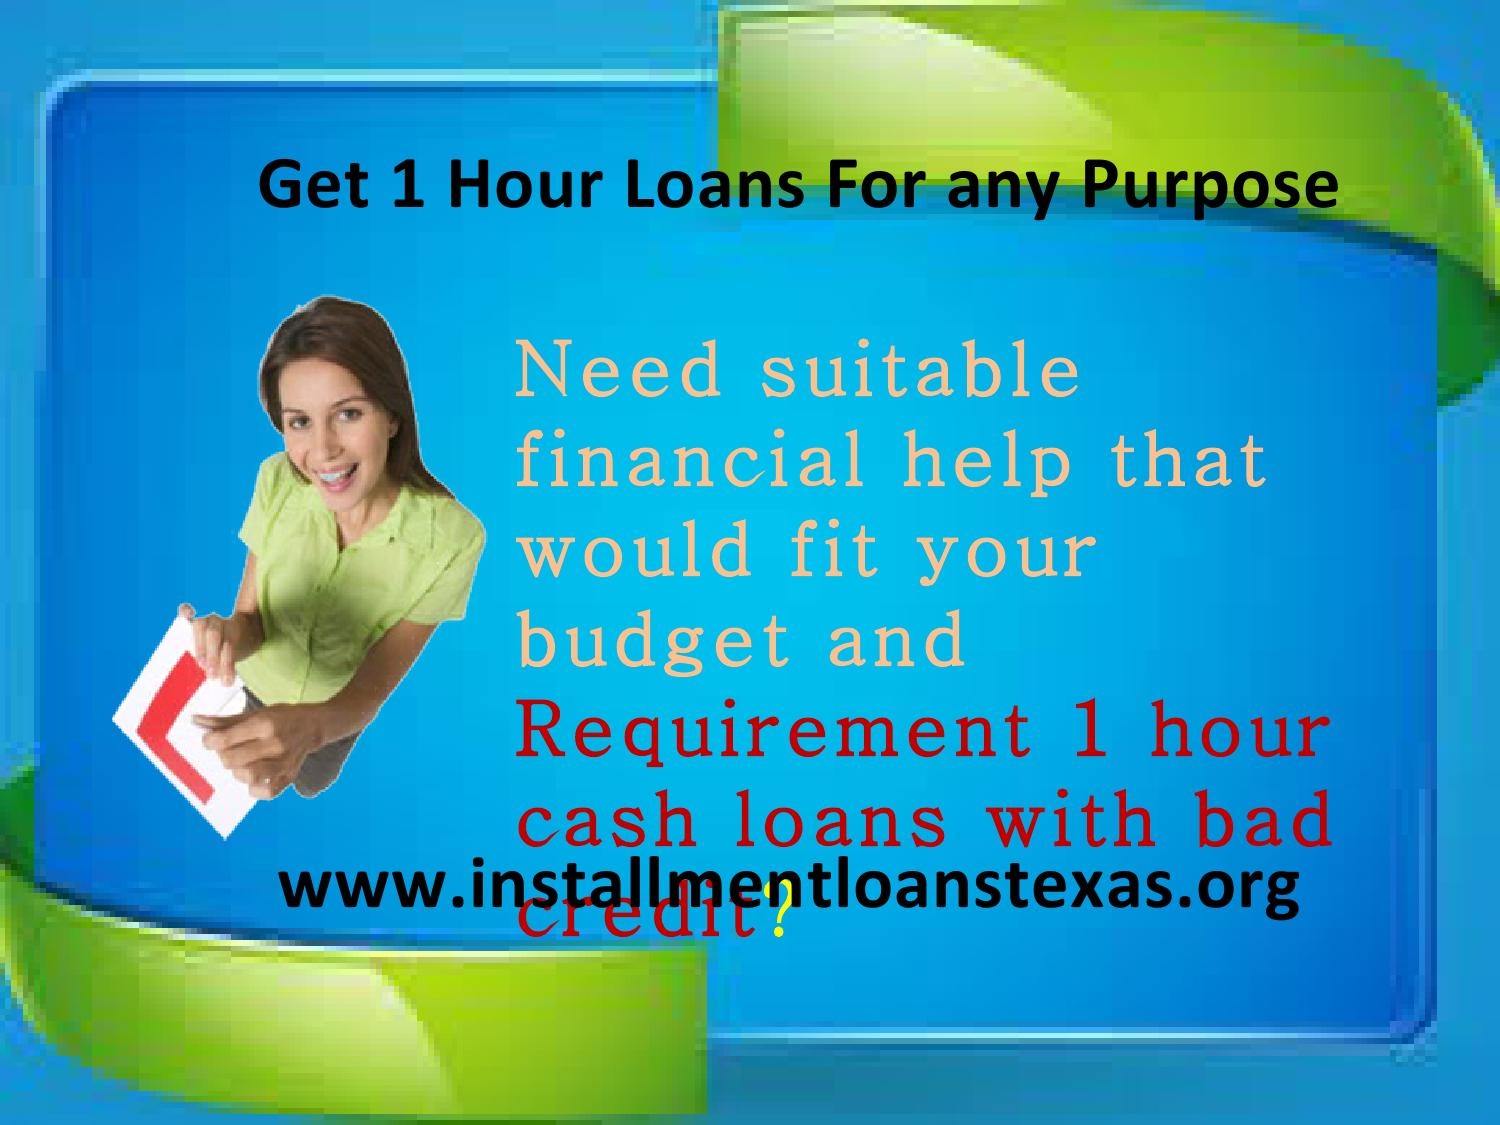 100 day loans for bad credit